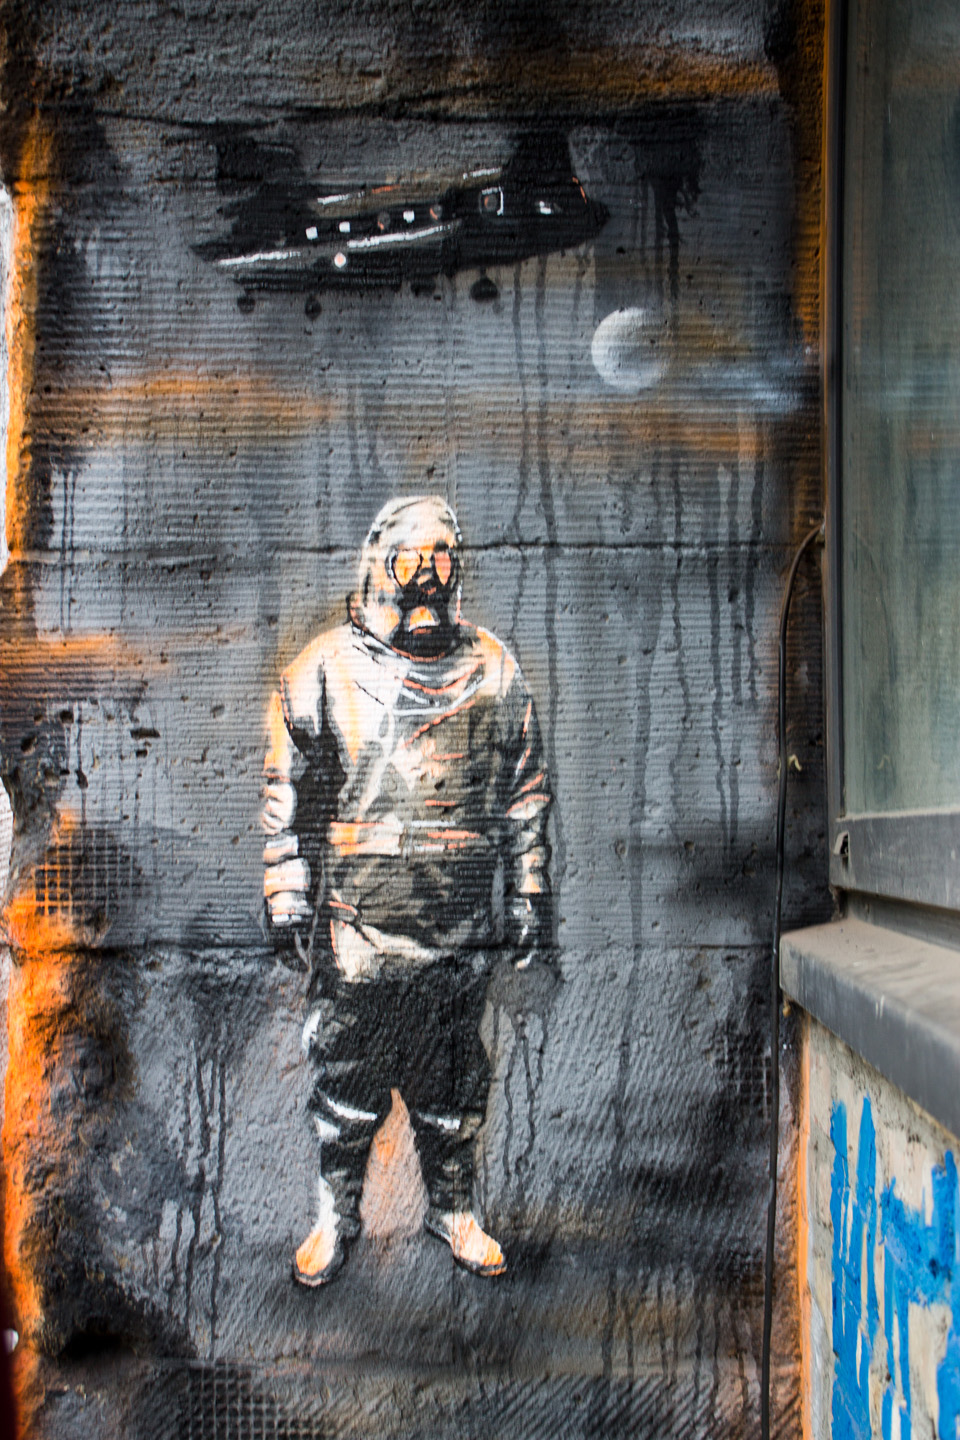 Street Artists Plotbot and Deycle hit the Tacheles in Berlin - Fotos and Report by Street Art BLN